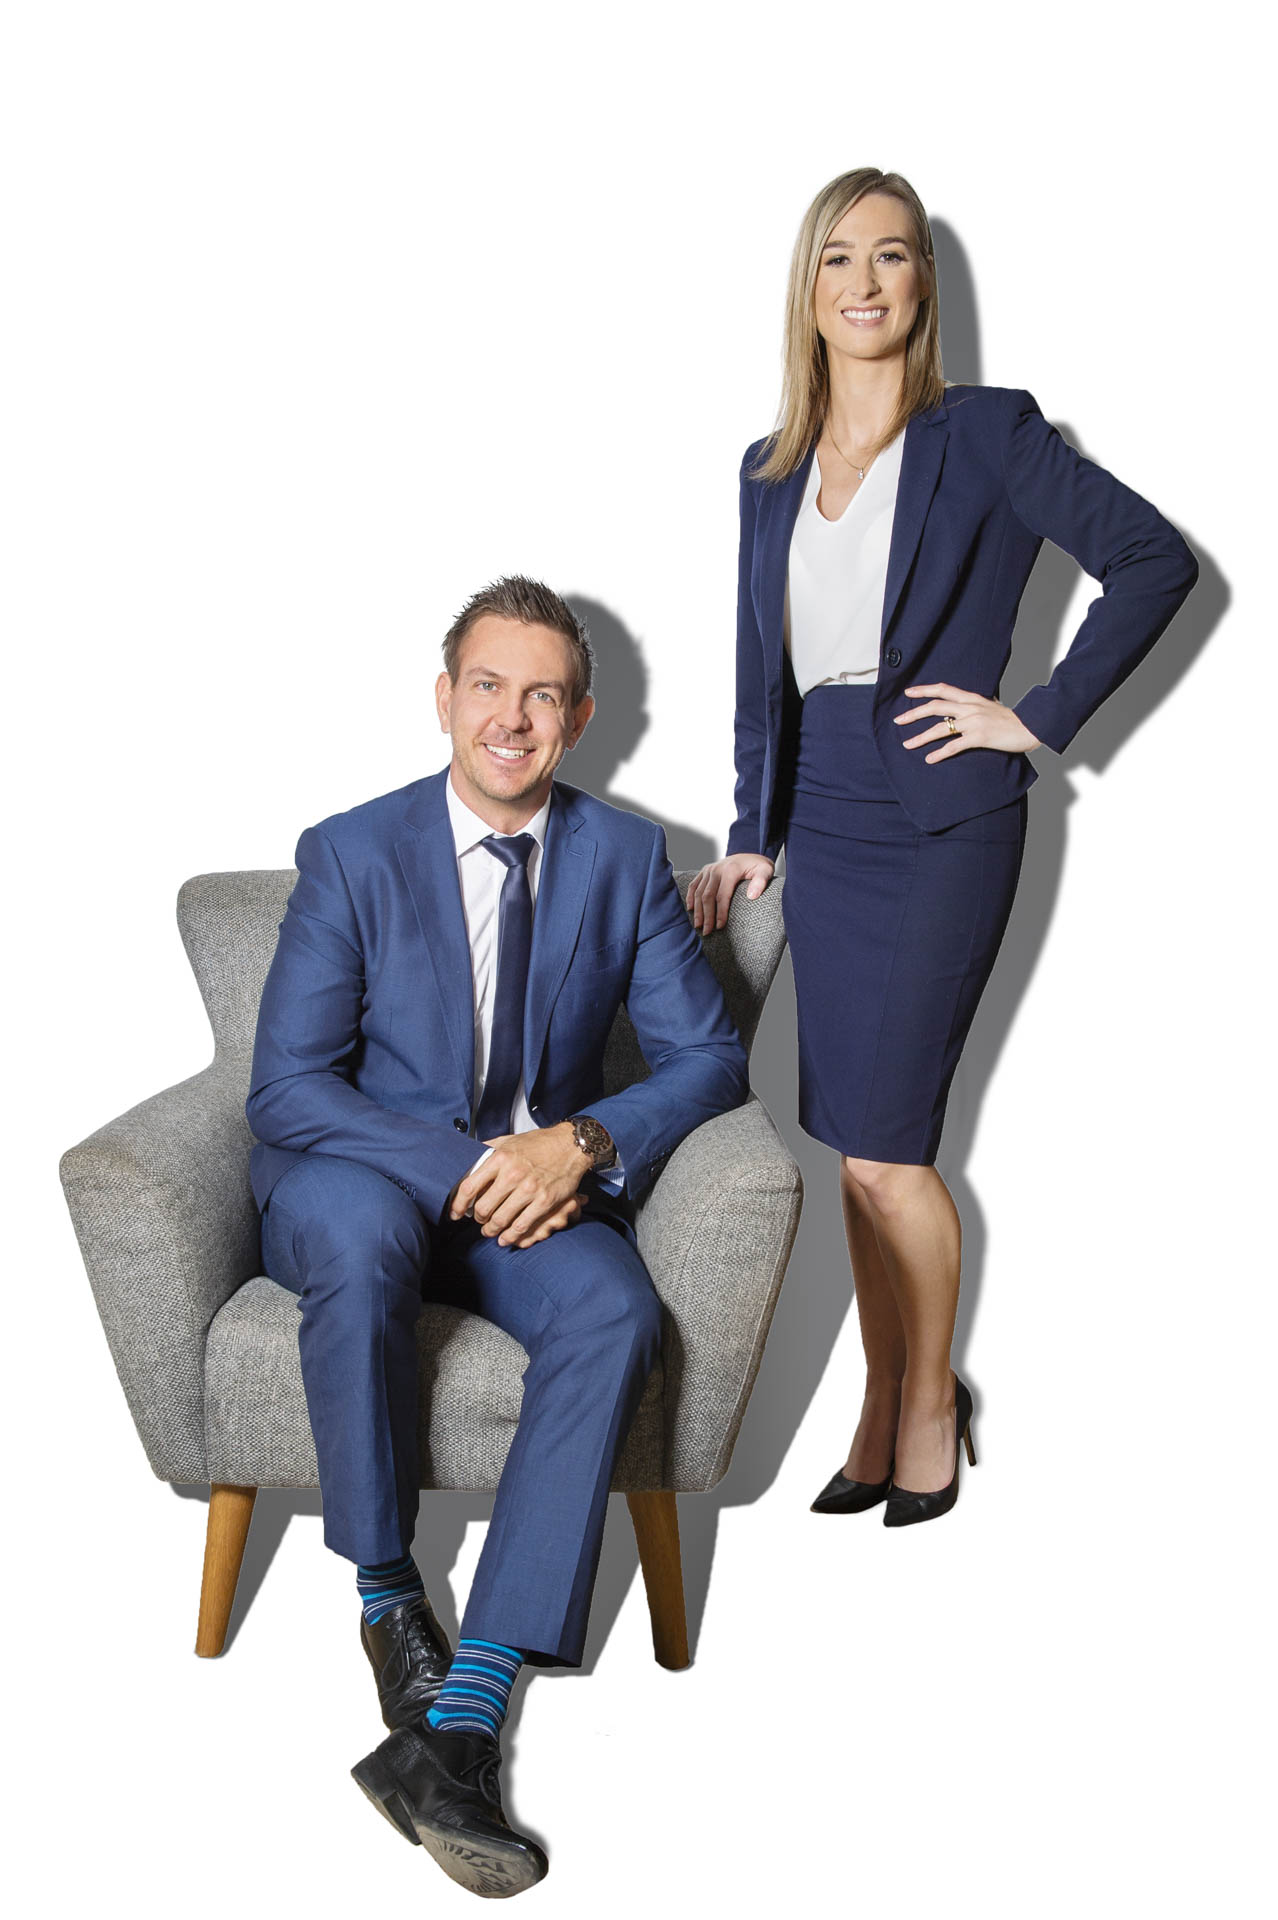 Corporate portraits of the team from Loan Market's Townsville office